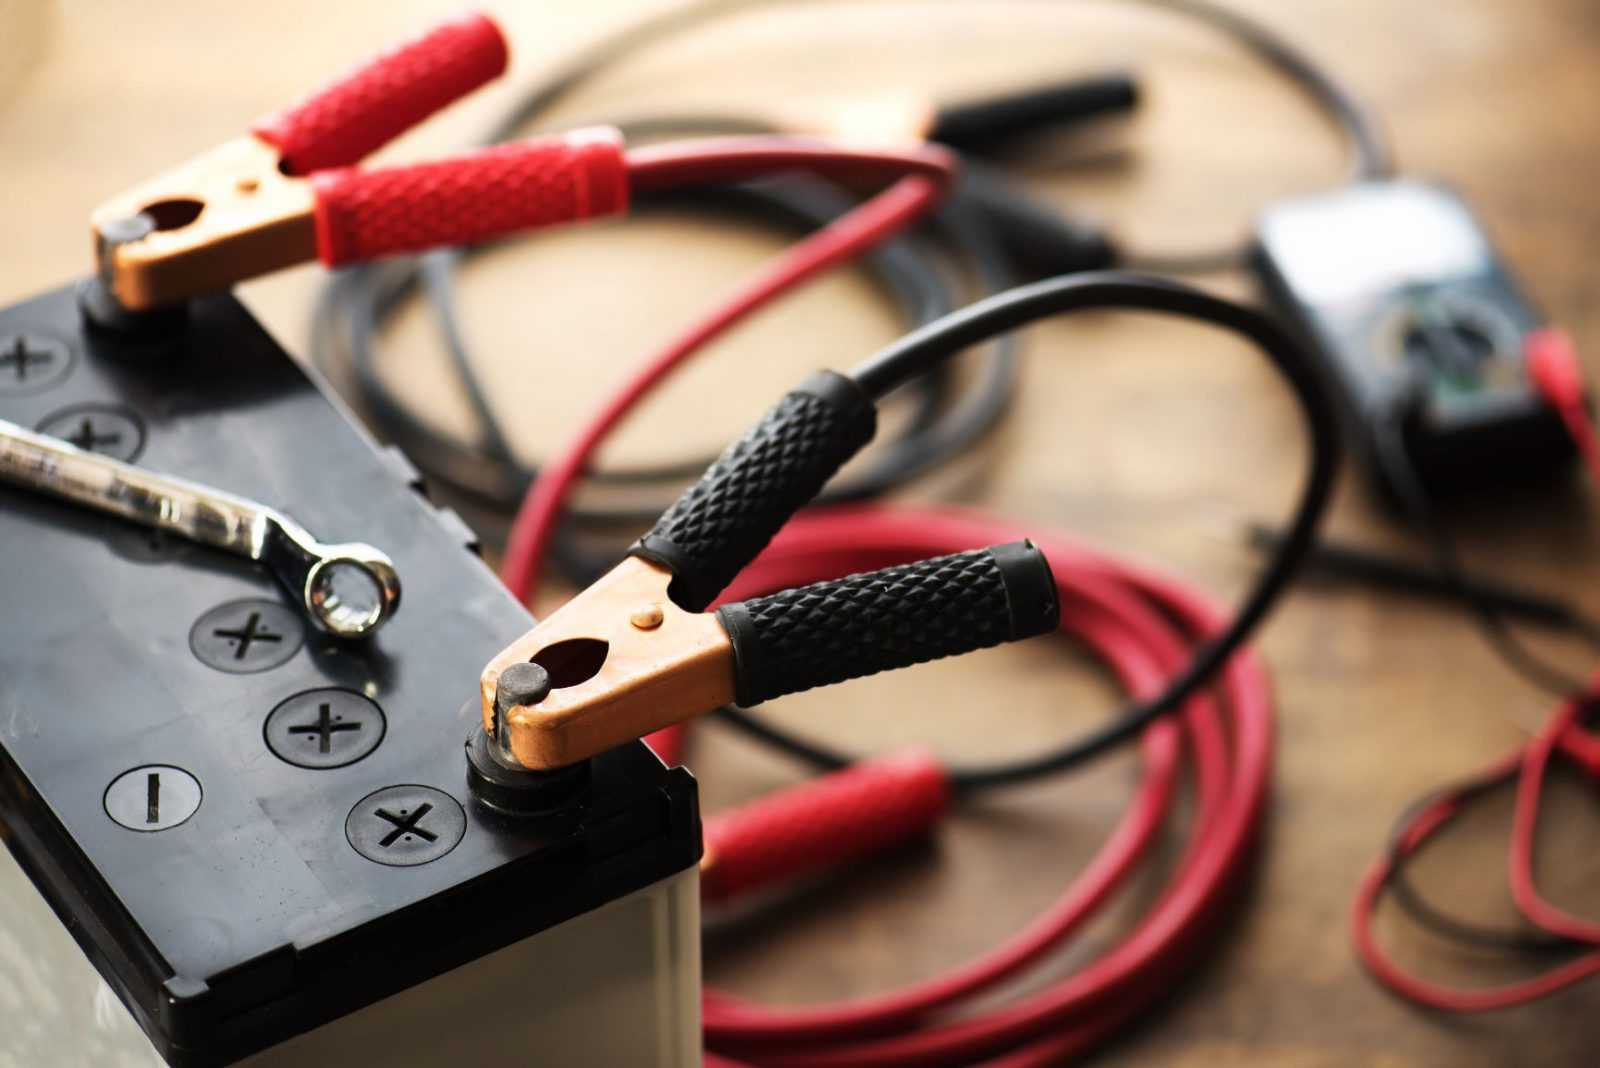 Charge your car's battery